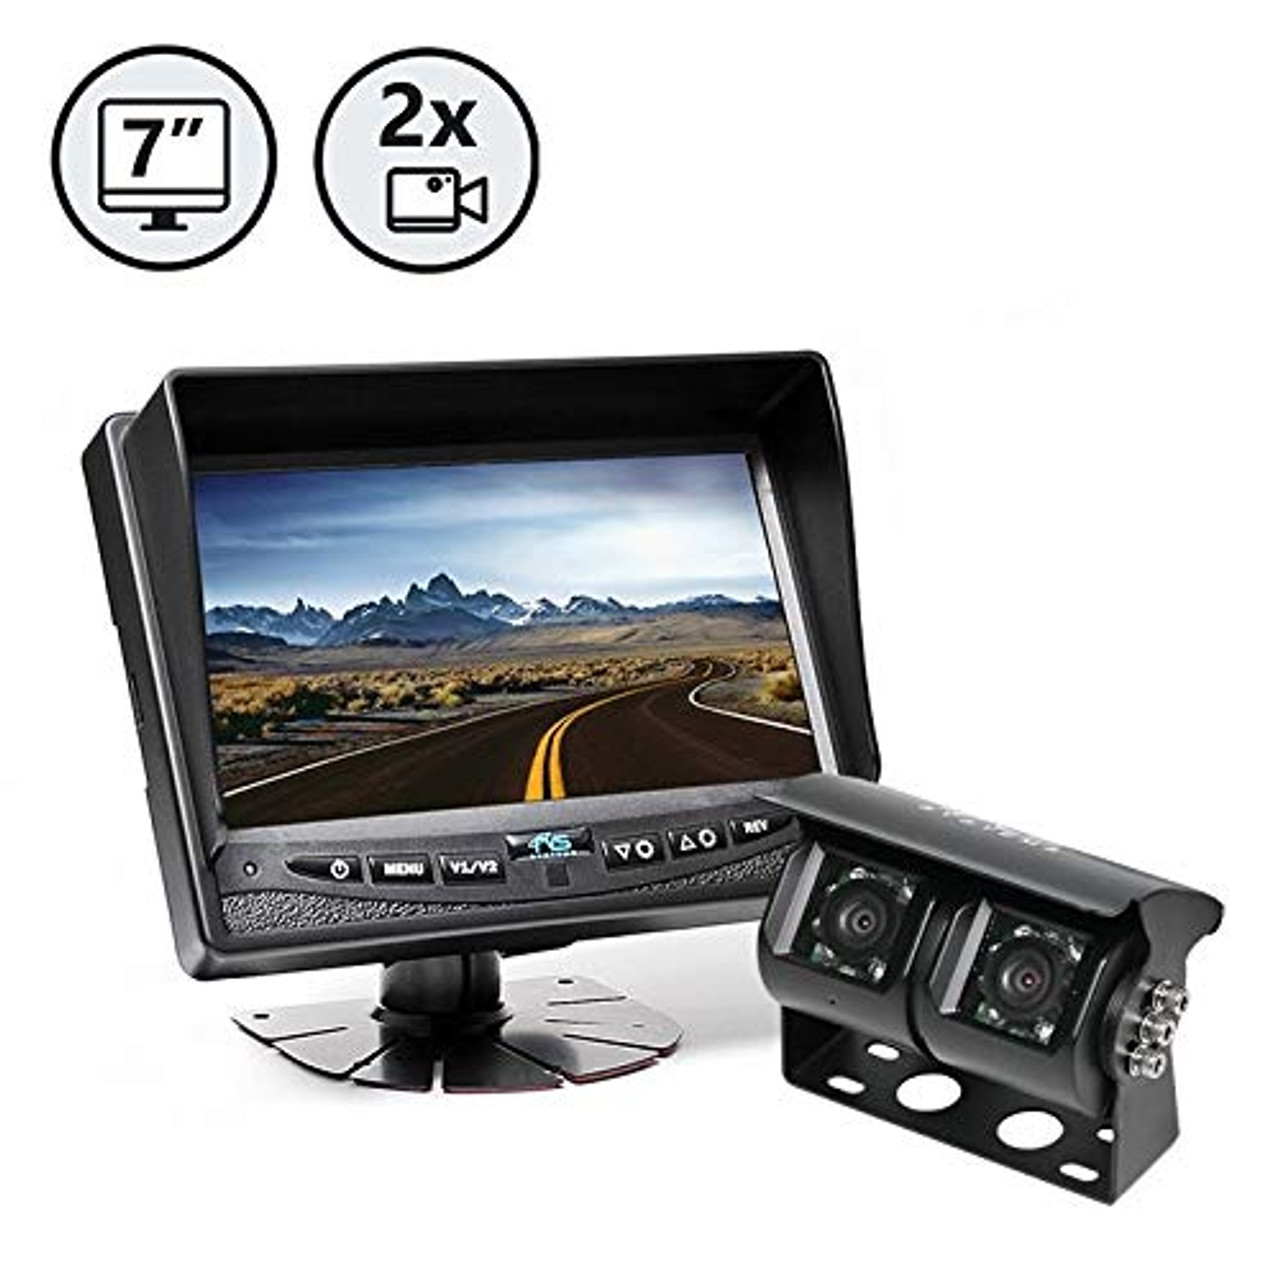 "7"" Display, Dual Lens Backup Camera, 2 x 66' Cables 